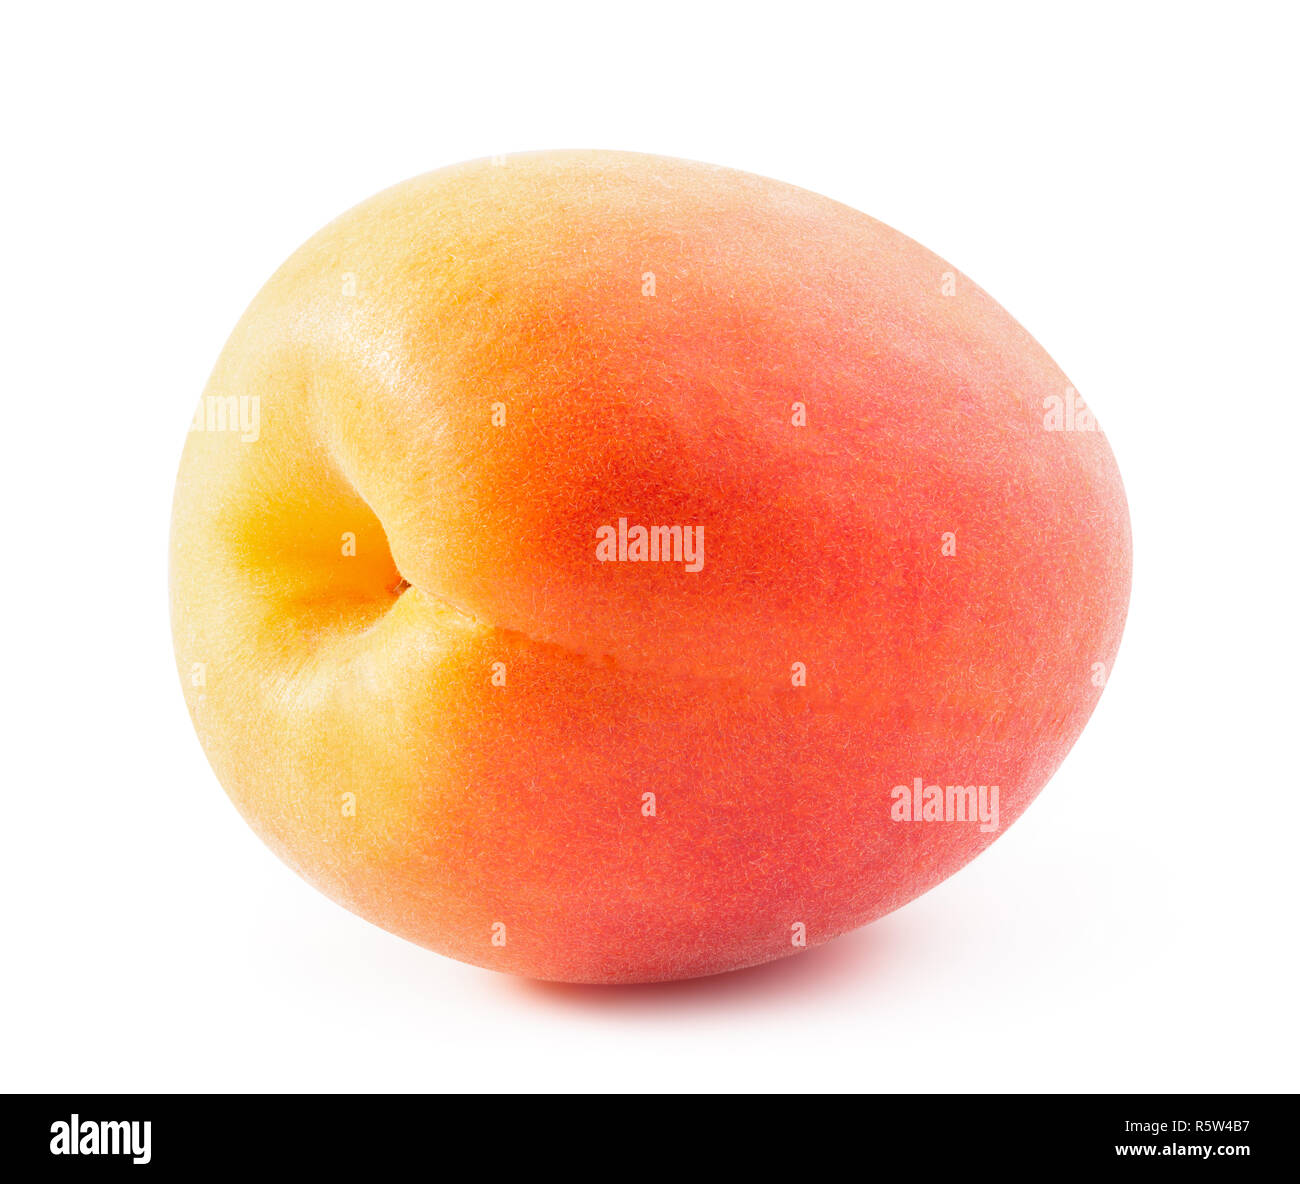 Ripe apricot isolated on white background with clipping path - Stock Image